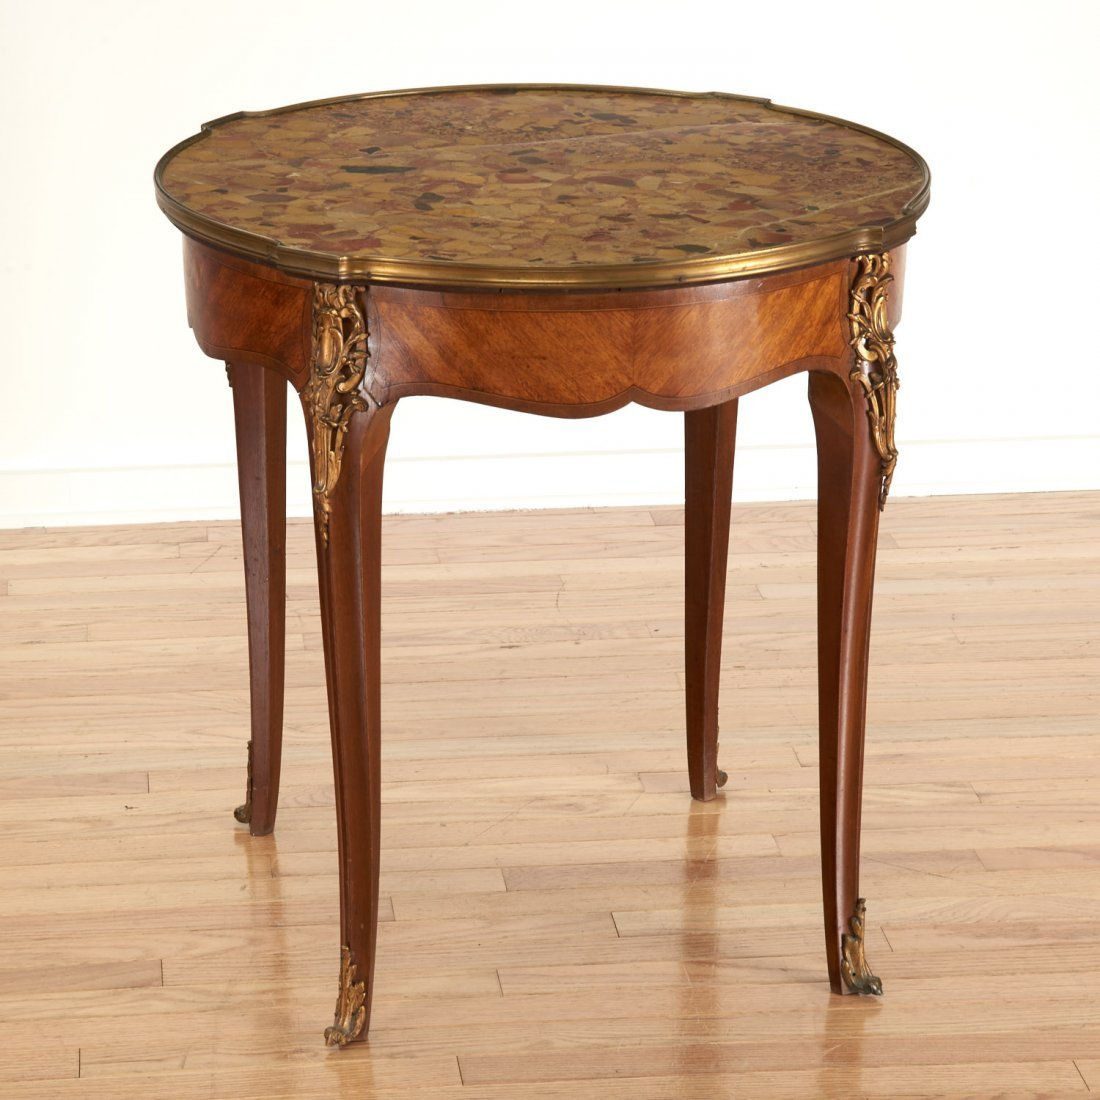 Louis XV style bronze mounted marble top table